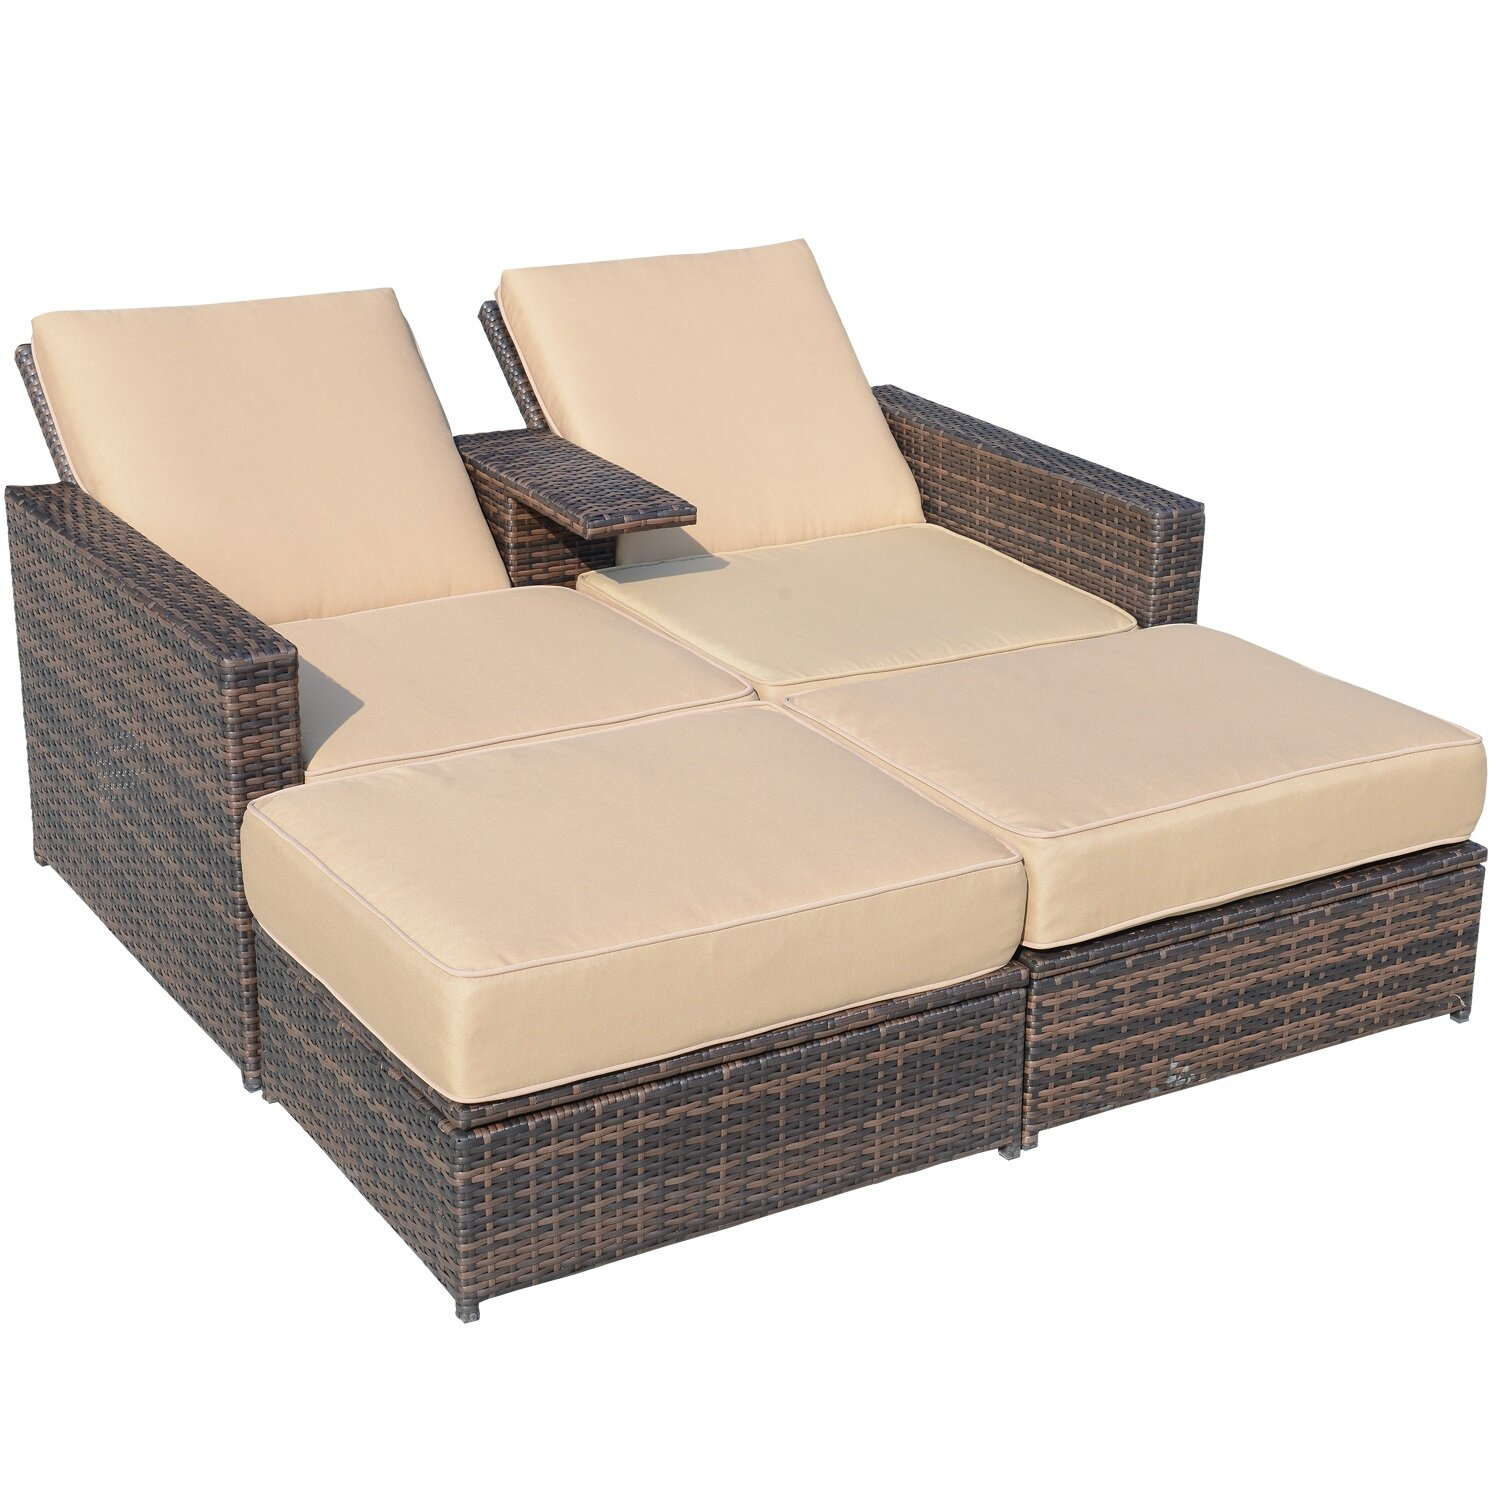 Oversized chaise lounge chairs - 4 Piece Double Chaise Lounge With Cushion